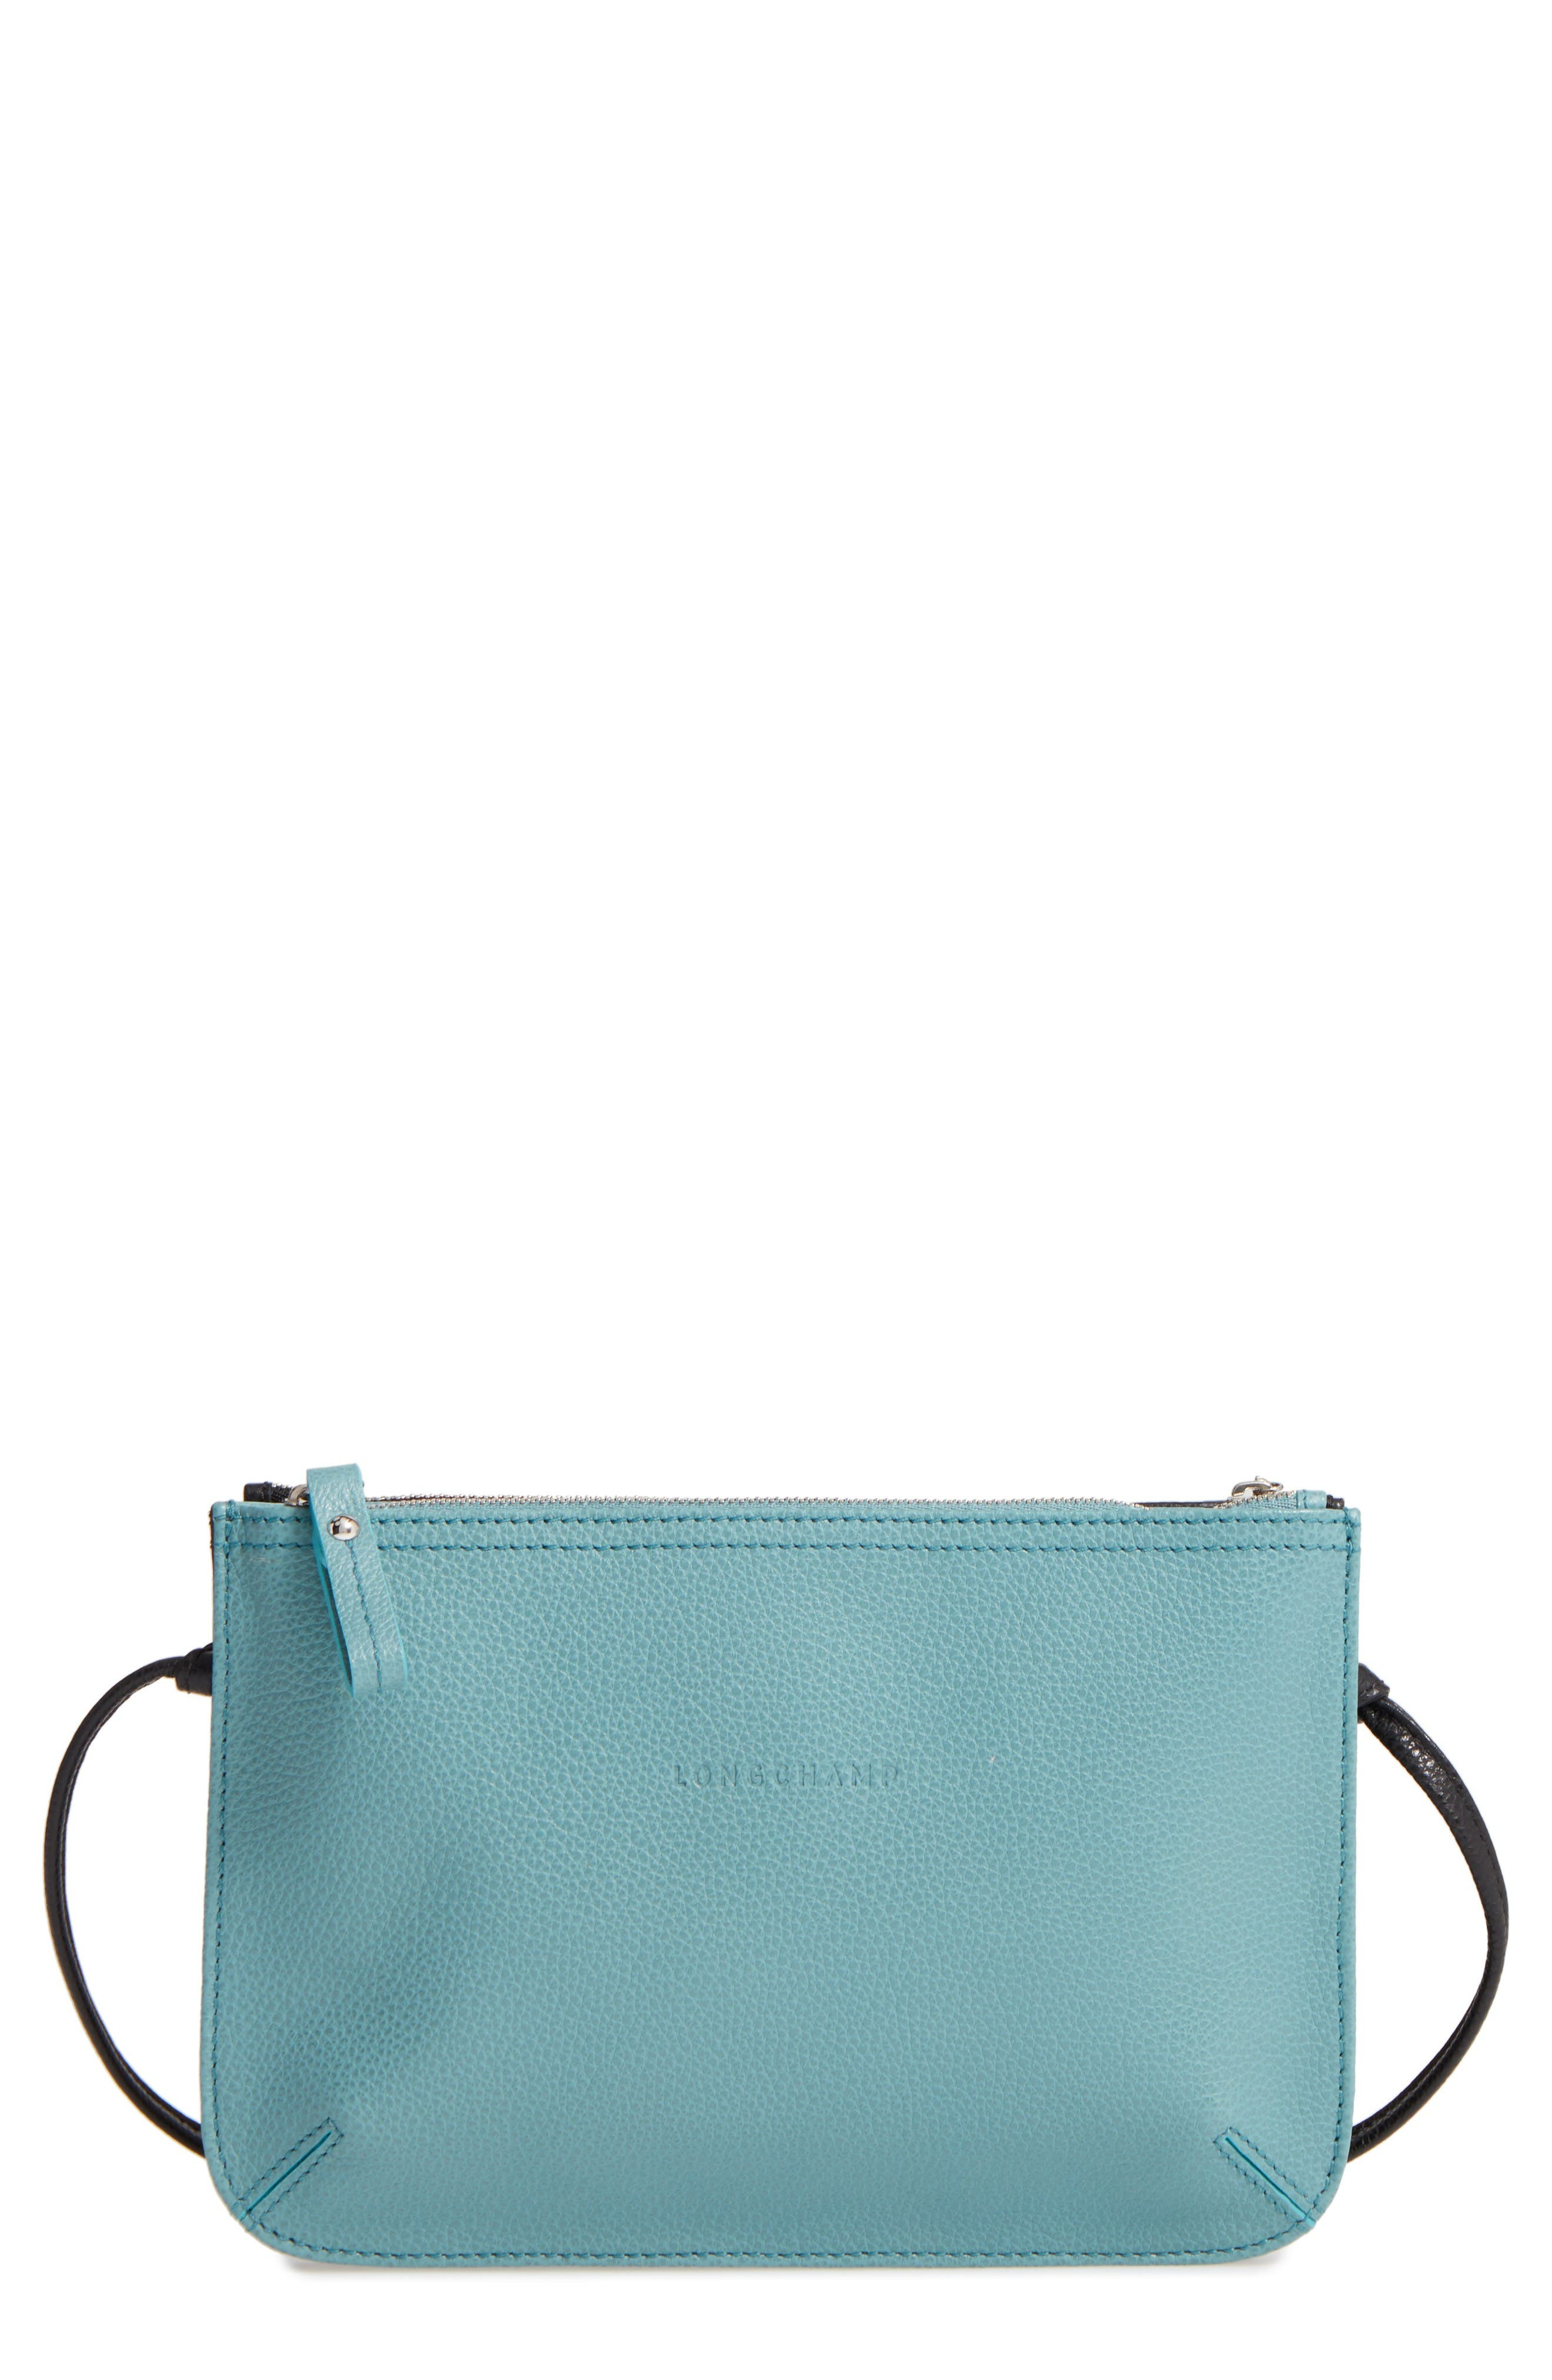 Alternate Image 1 Selected - Longchamp Le Foulonné Leather Crossbody Bag